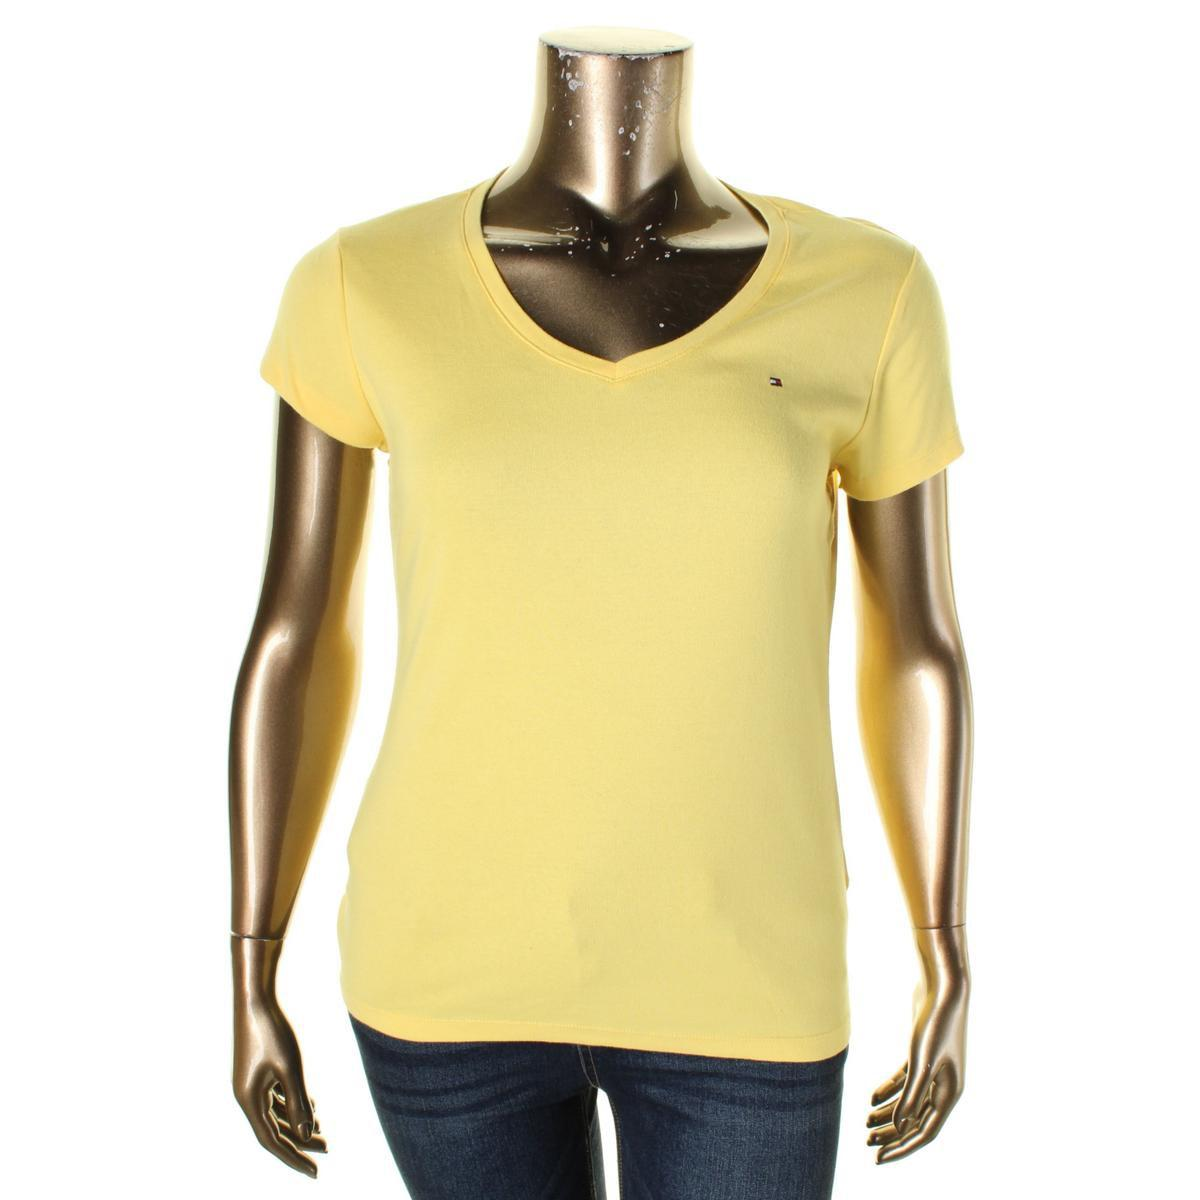 9fda0d13a6ce72 Lyst - Tommy Hilfiger Womens Monogram V-neck T-shirt in Yellow